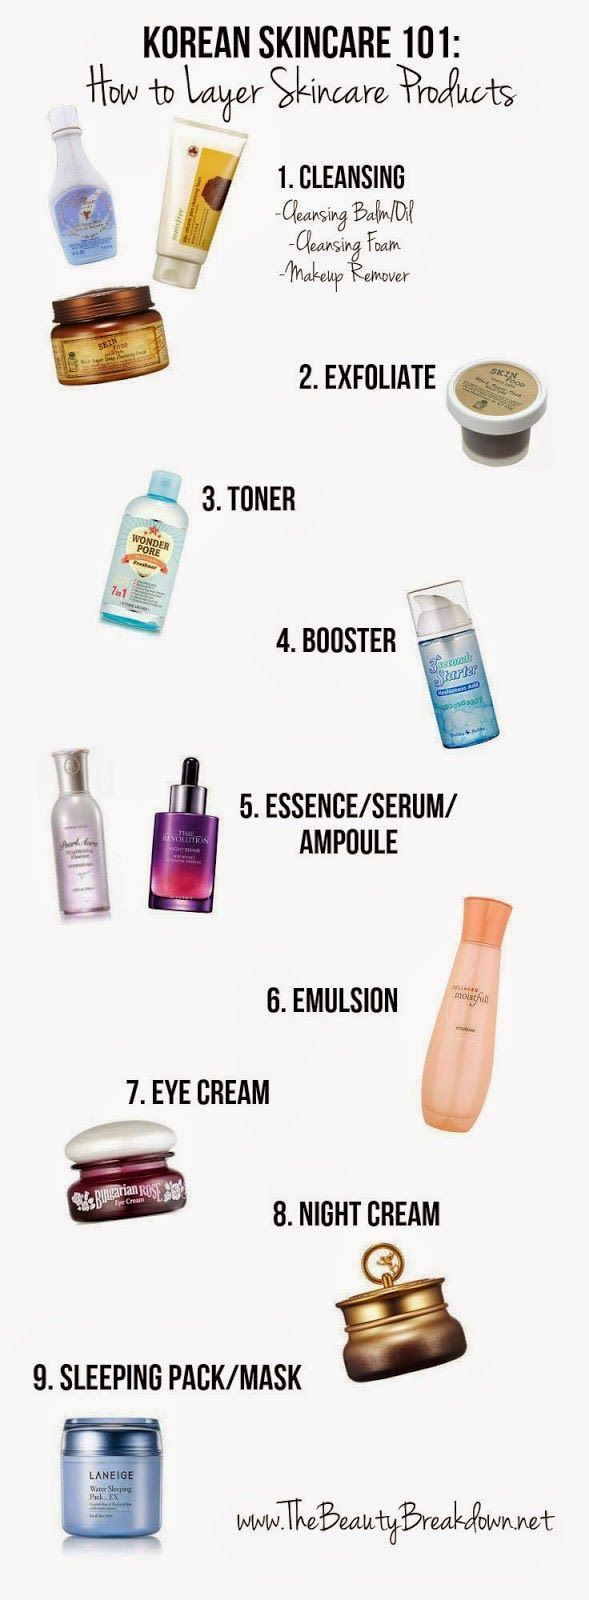 14 Must Have Korean Beauty Products - Korean Skincare 101, a 9 step process to flawless skin. Photo via The Beauty Breakdown #beautysecrets